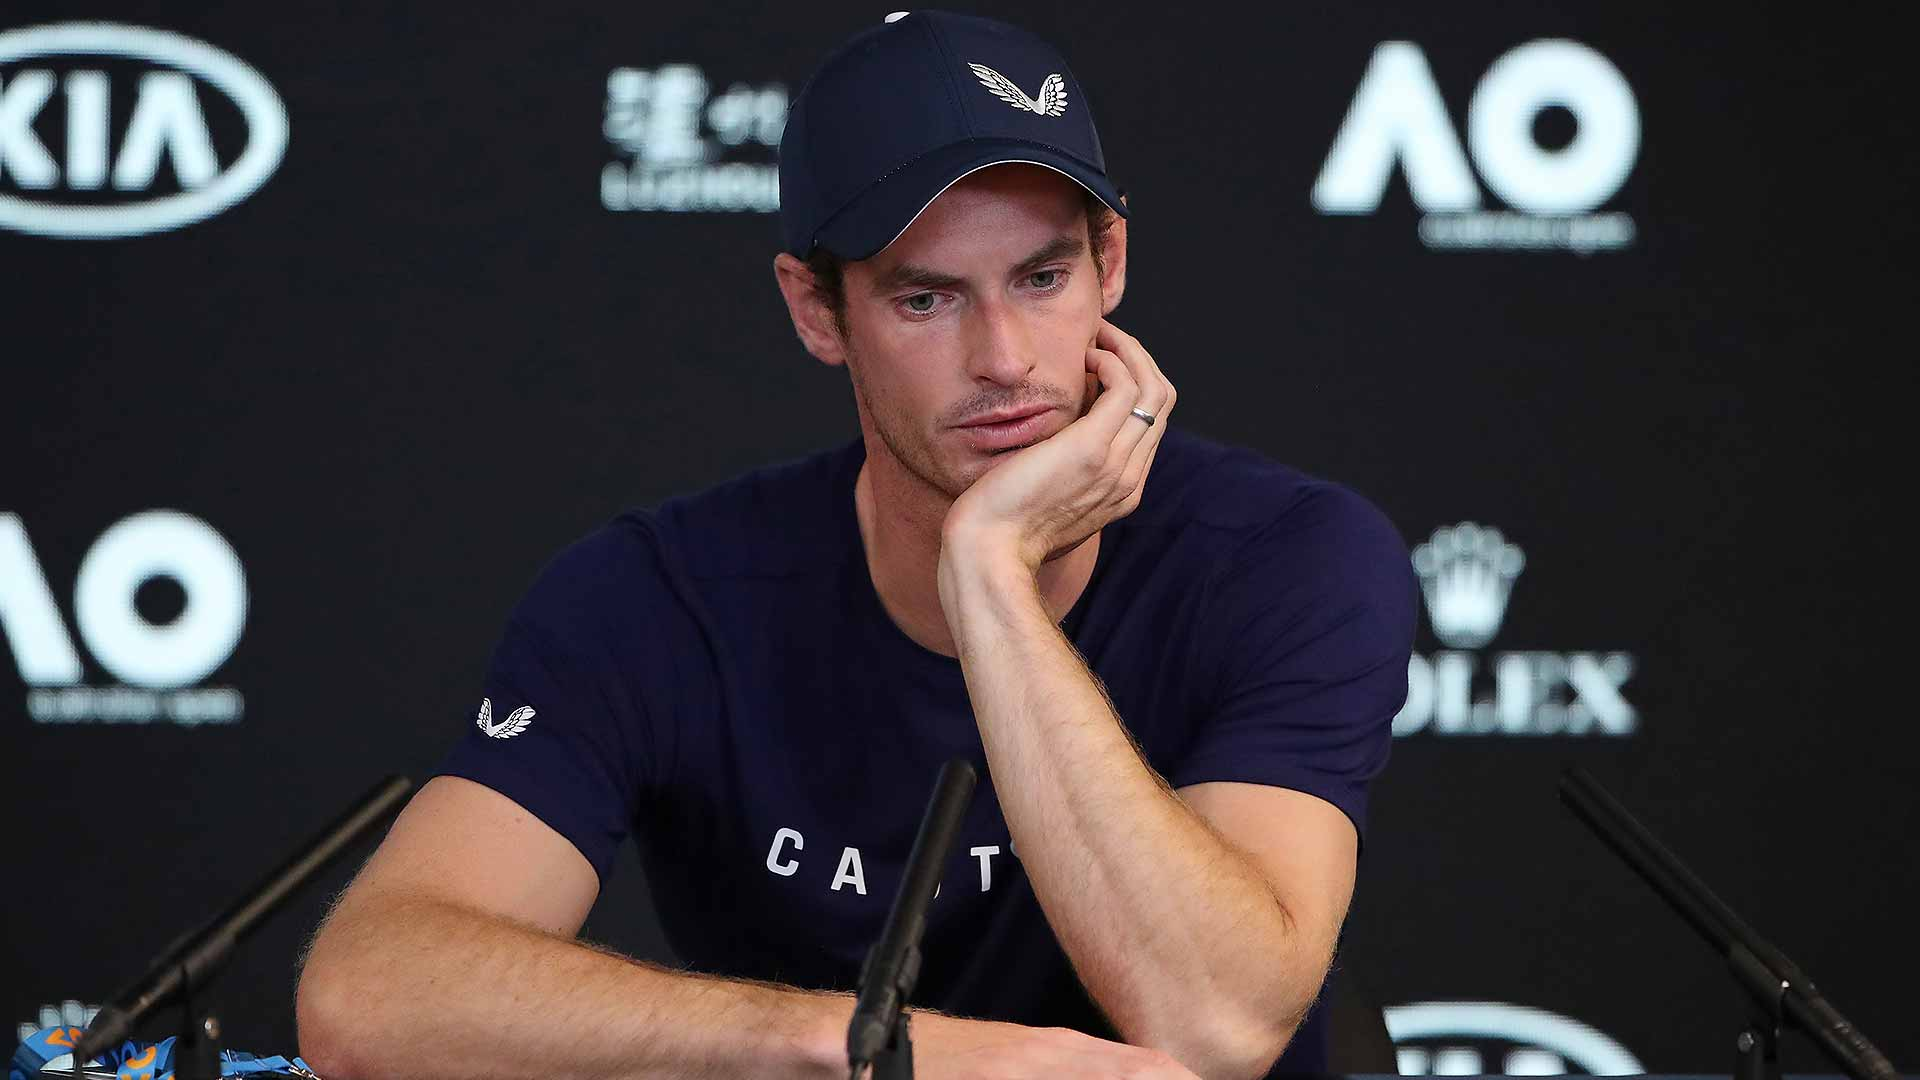 Andy Murray during his press conference in Melbourne